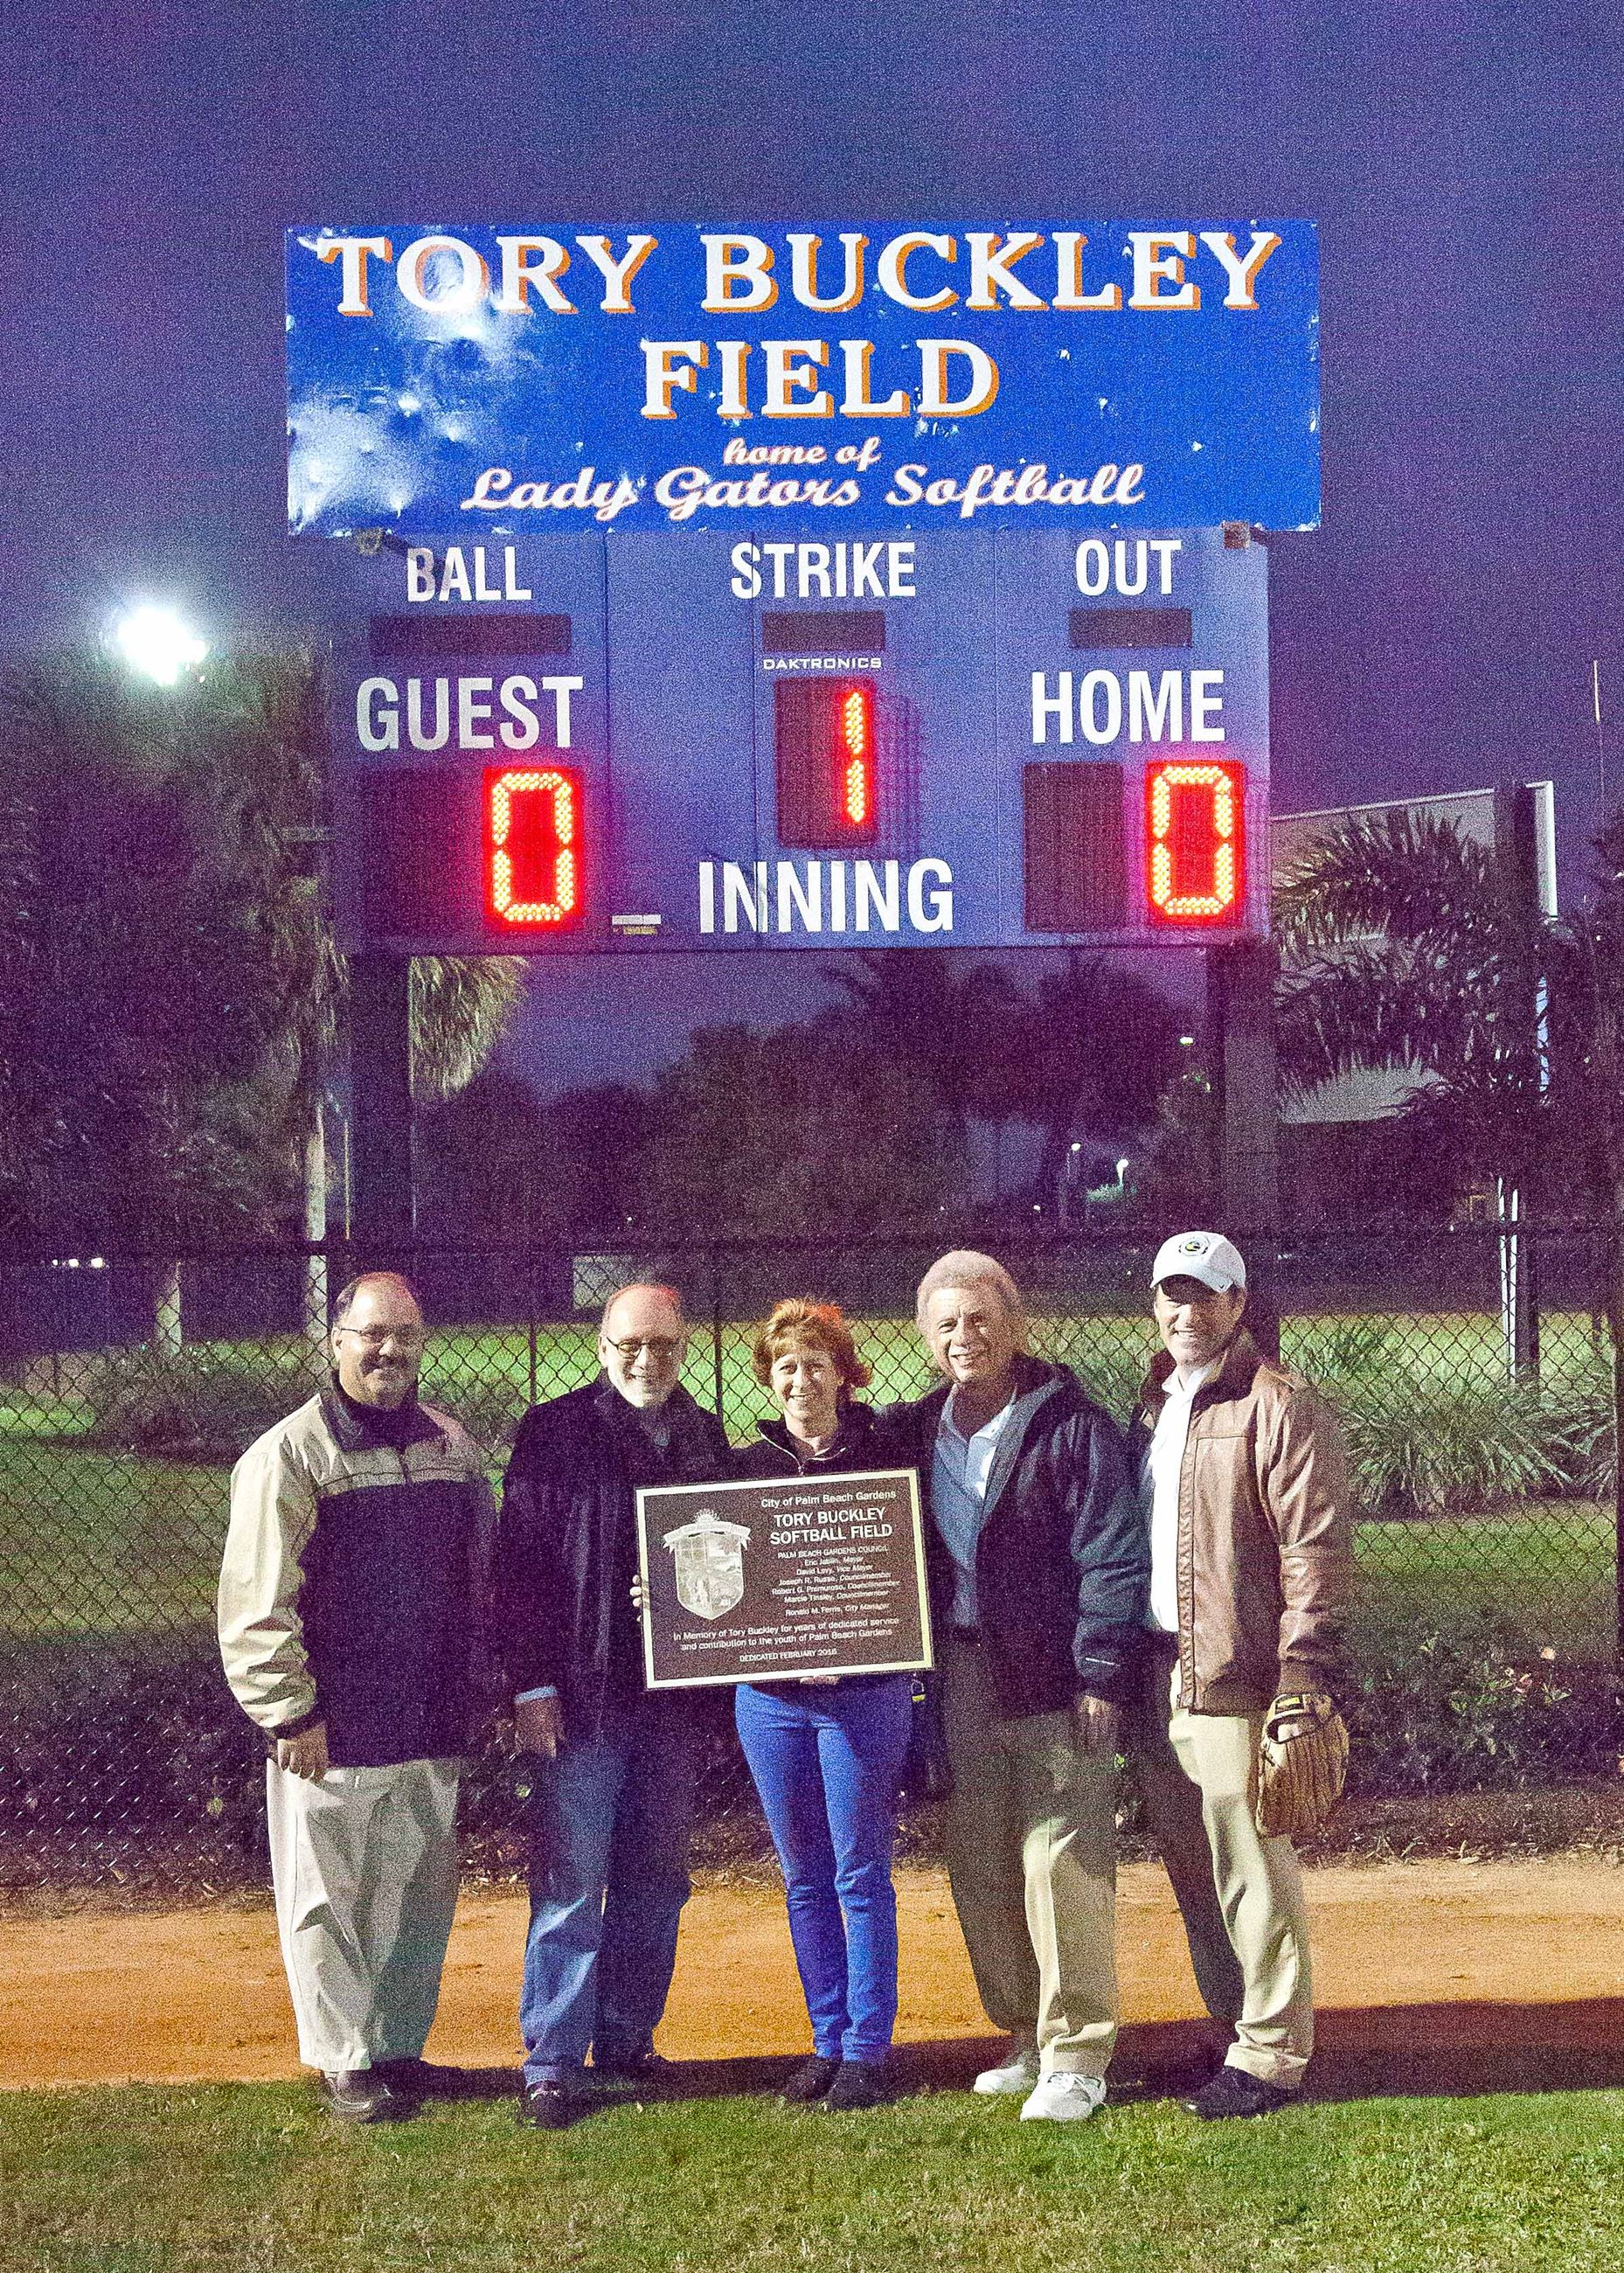 Council Members holding a plaque in front of the Tory Buckley Field scoreboard